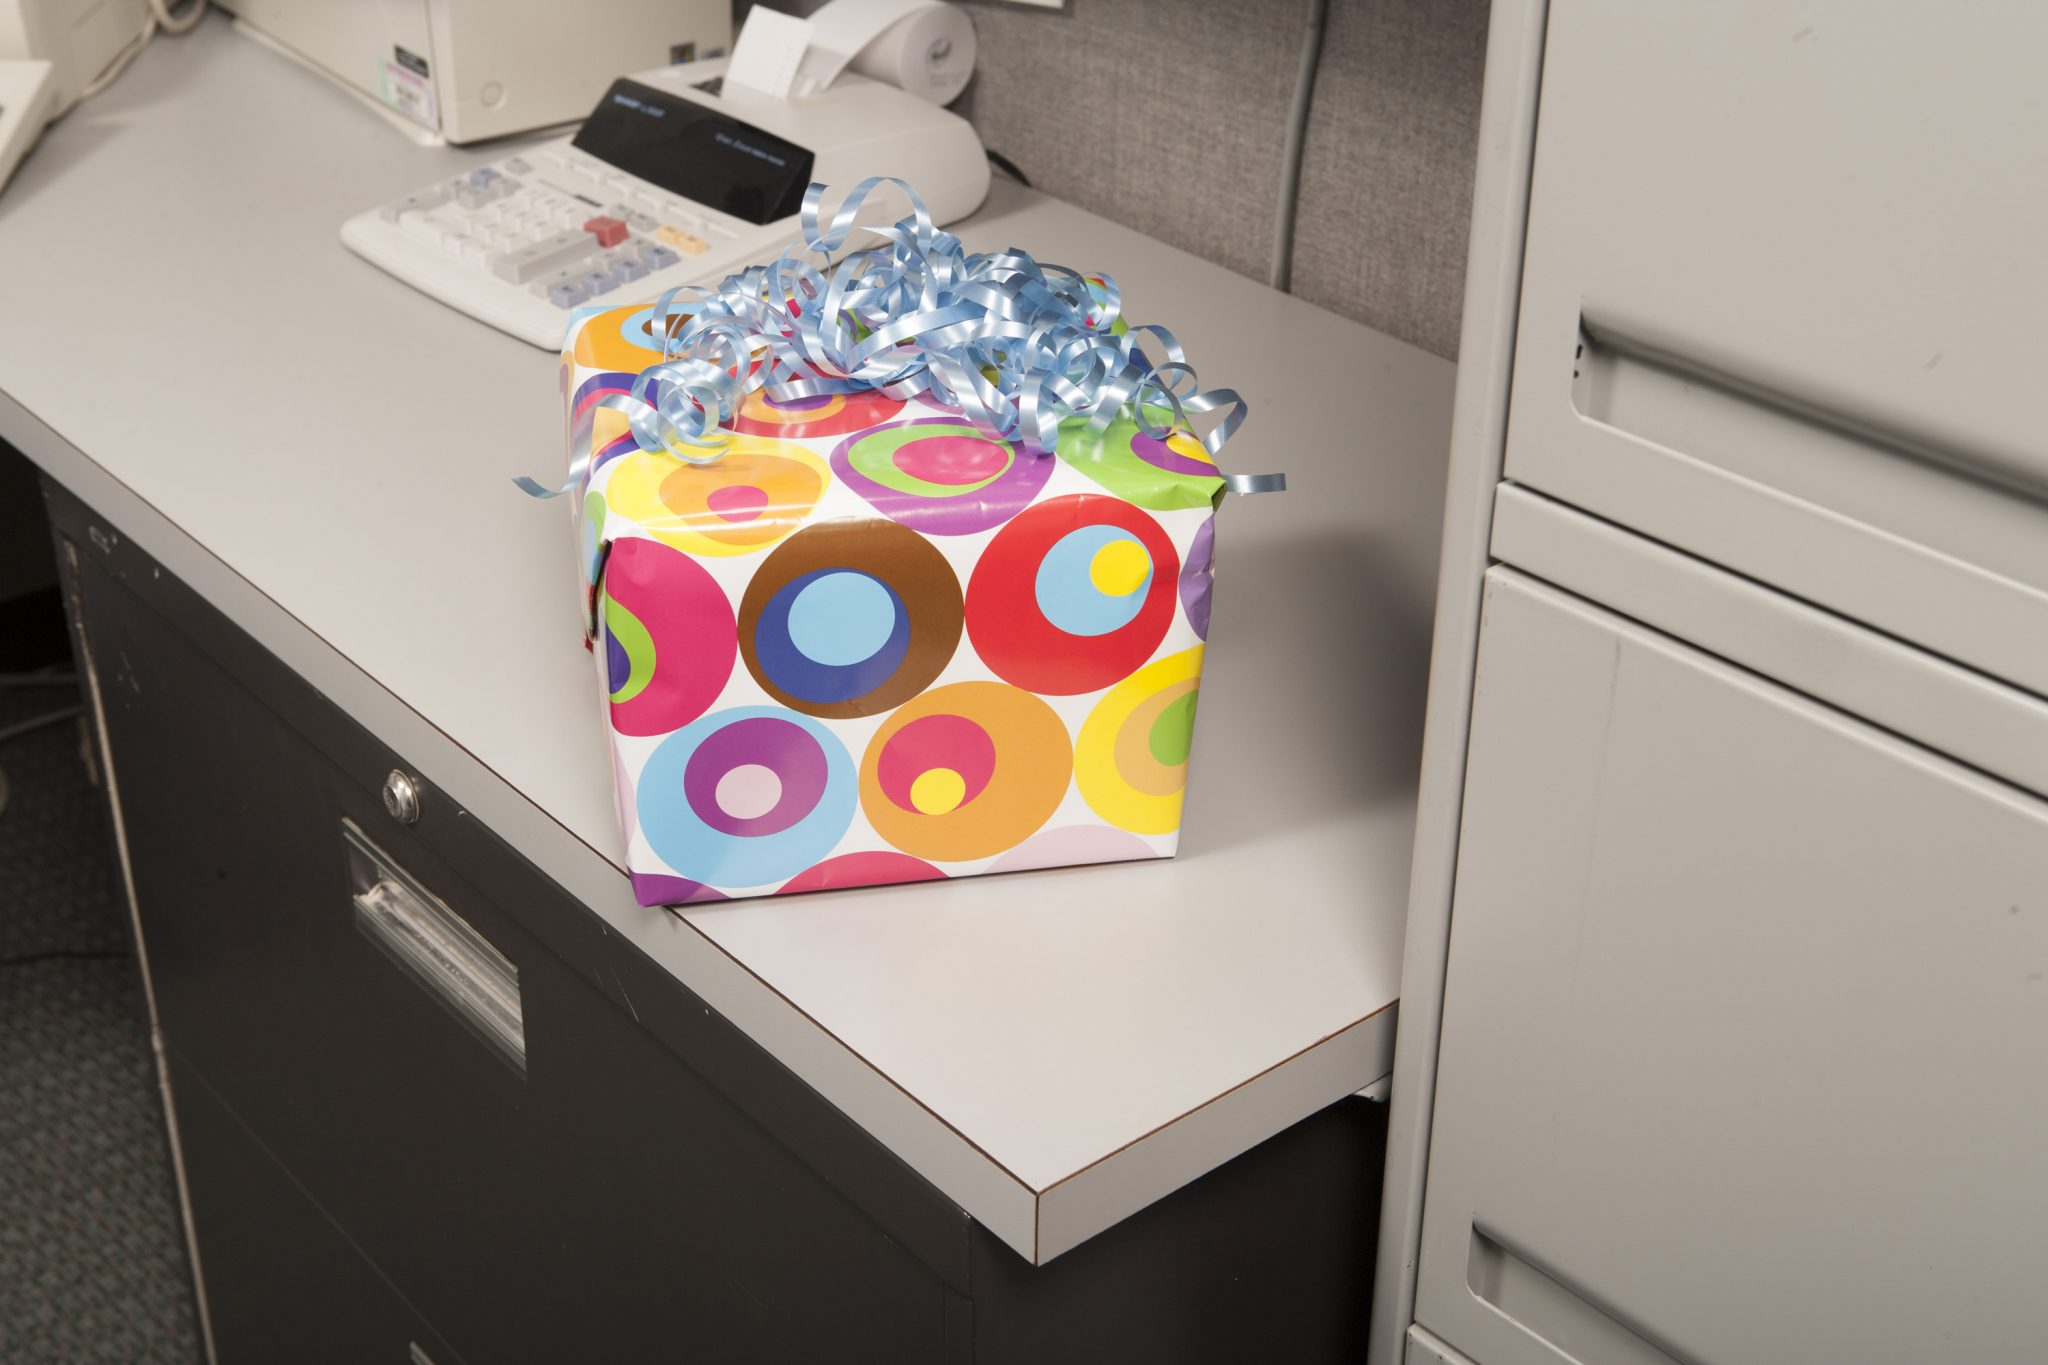 Its Always A Great Surprise Finding Gift Waiting To Be Opened Therefore Consider Leaving Present On Their Desk